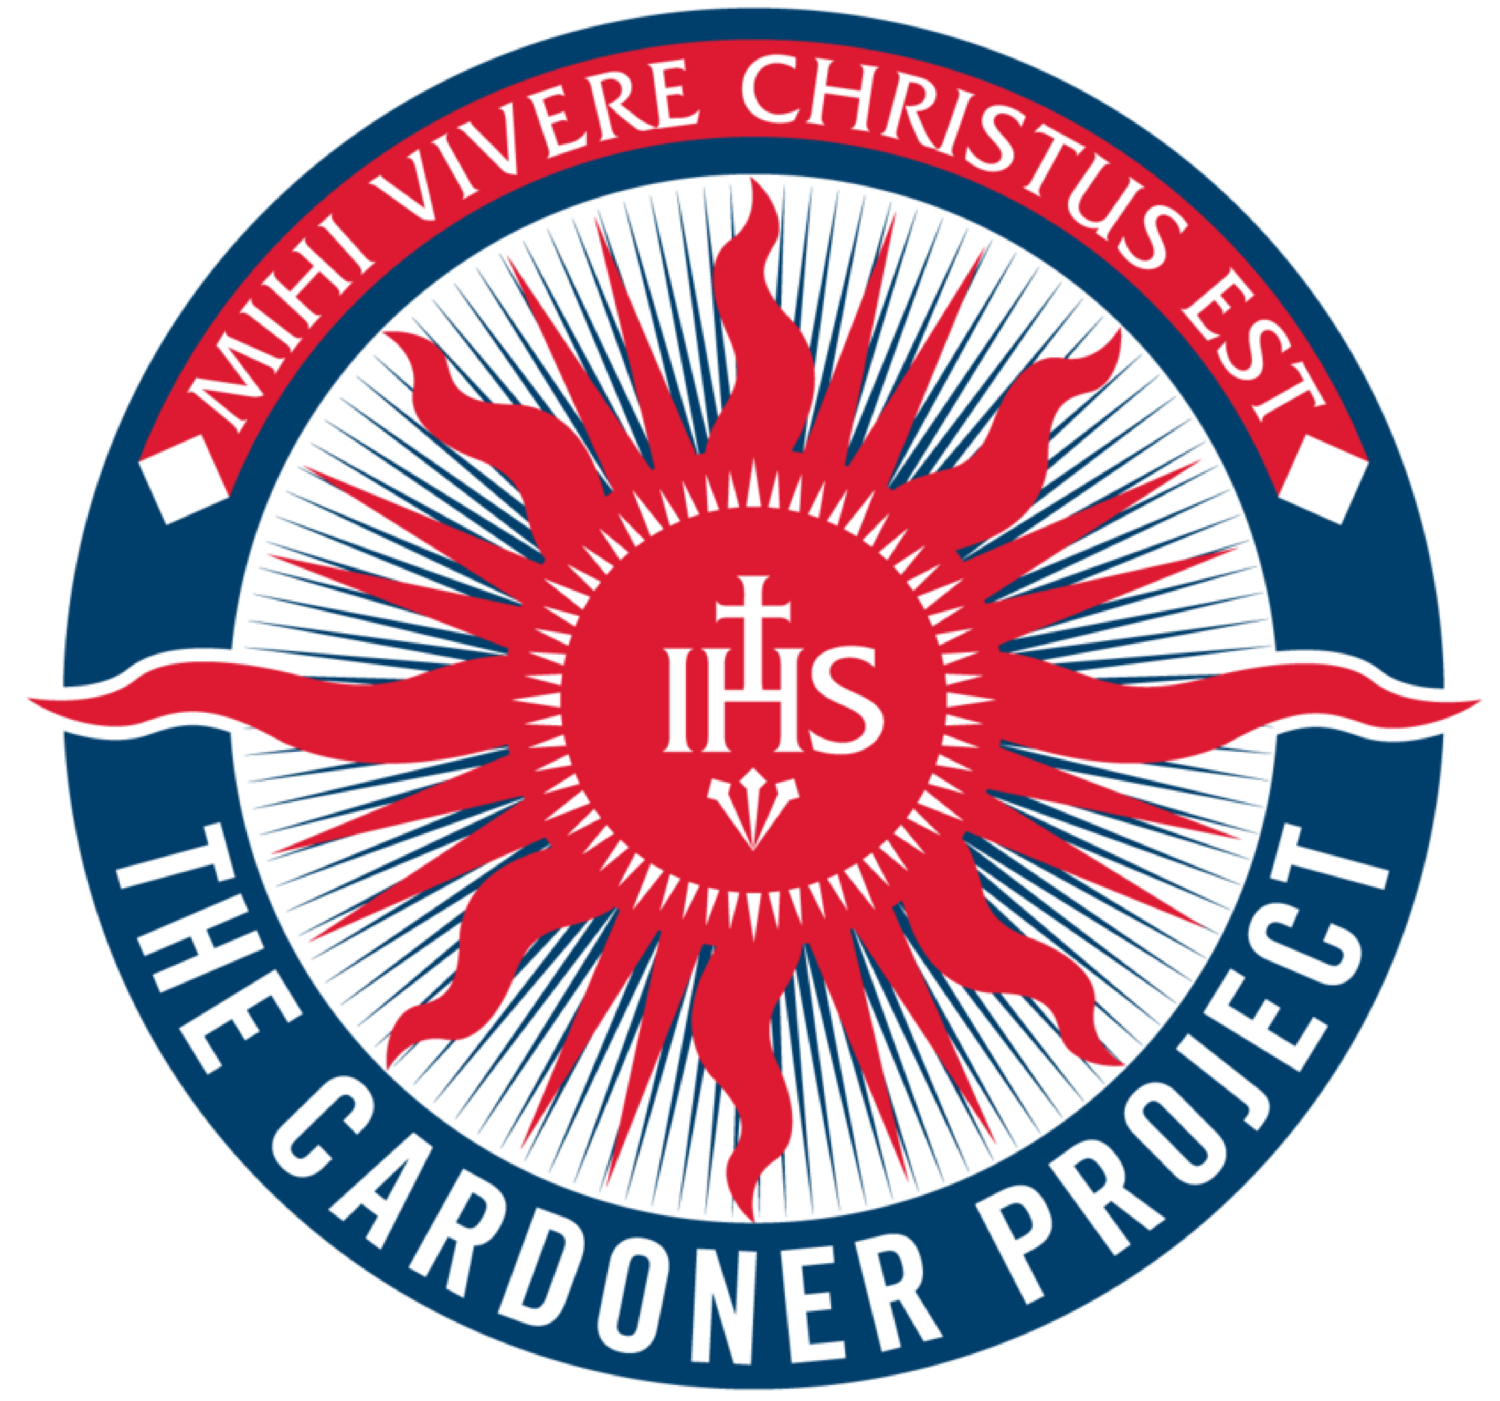 The Cardoner Project